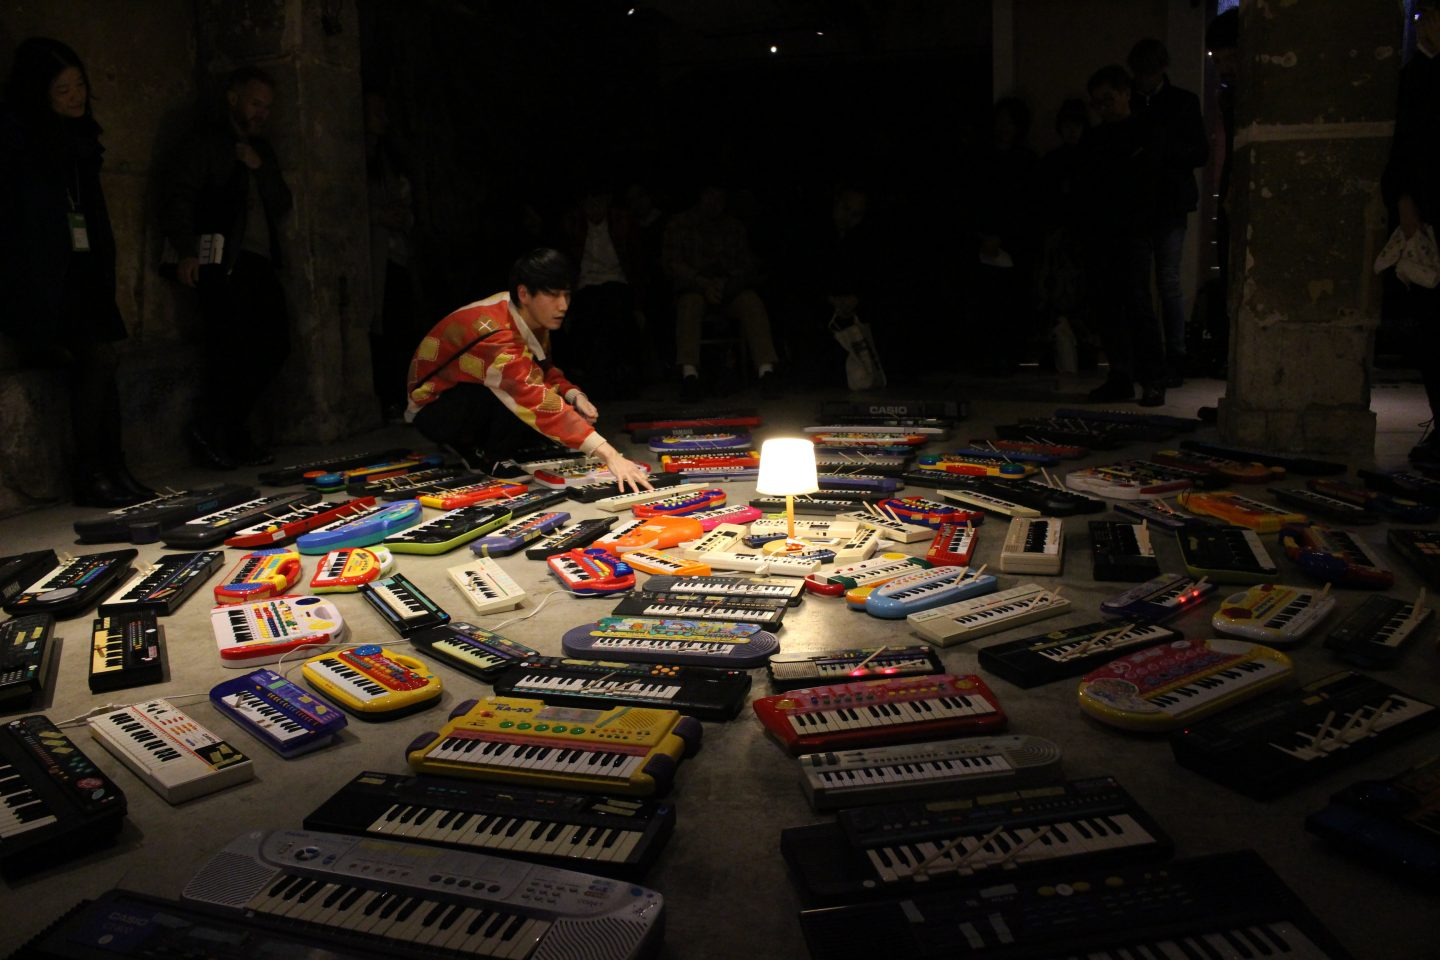 The artist sits at the edge of concentric circle of keyboards placed on the floor